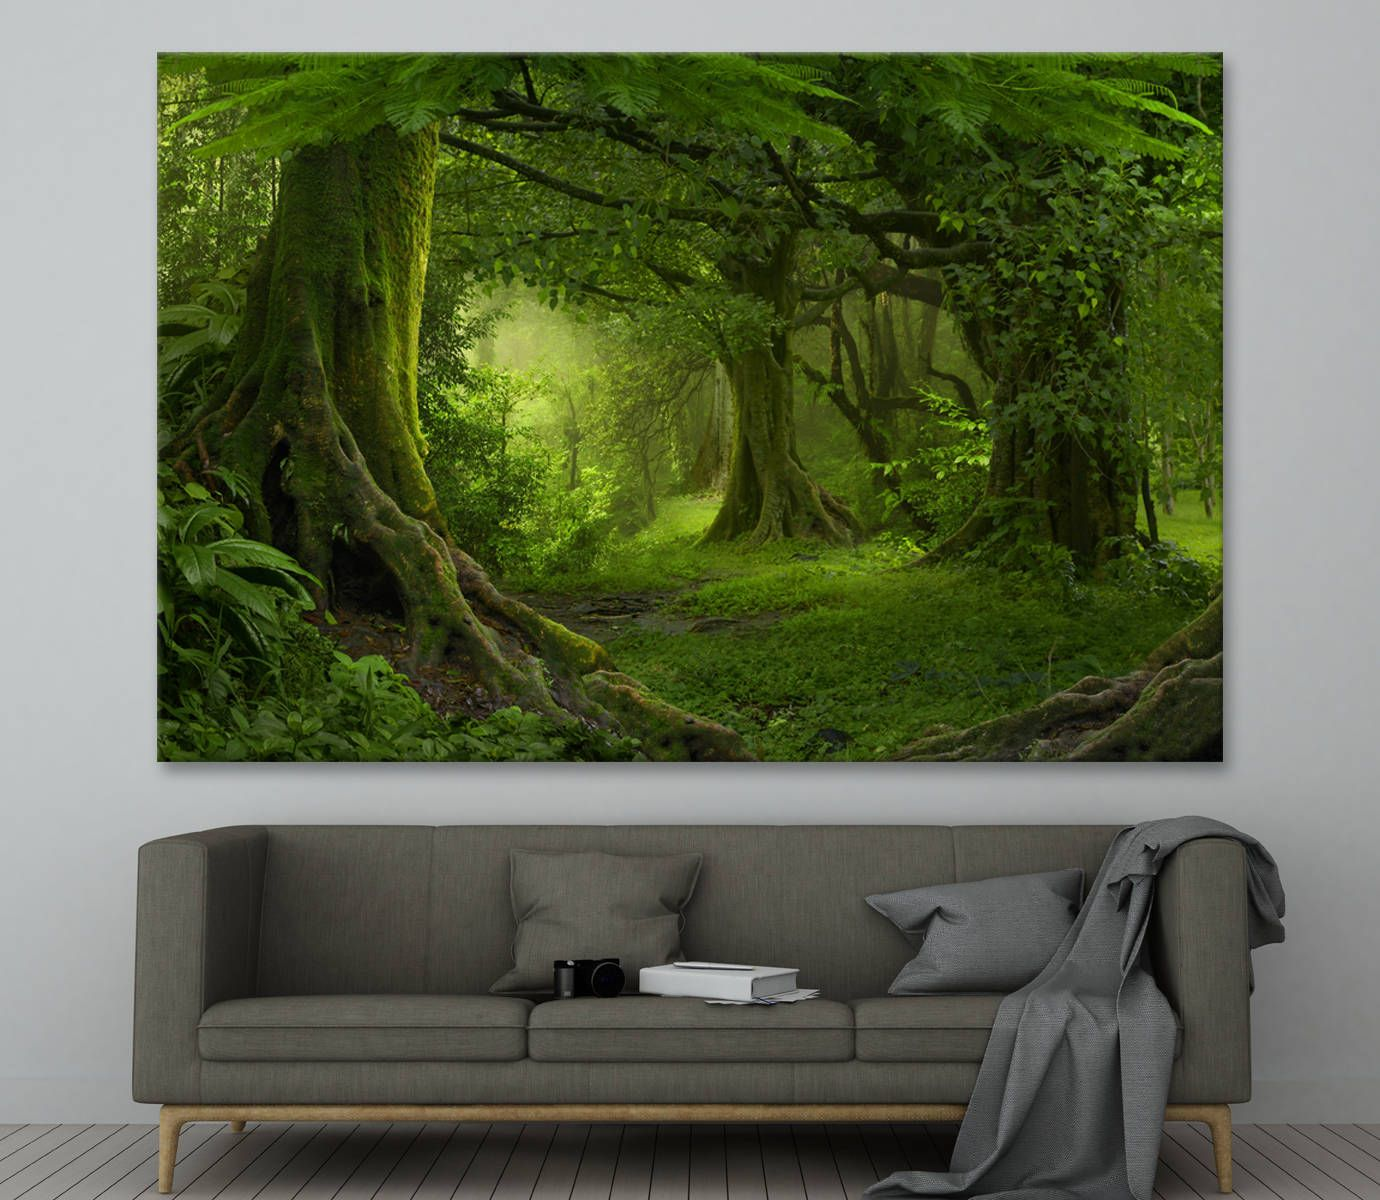 Canvas art Green forest and trees Large Photoprint Multi Panel Canvas Print, Nature Wall Art Decoration Extra Large Print Ready to Hang by CanvasPrintStudio on Etsy